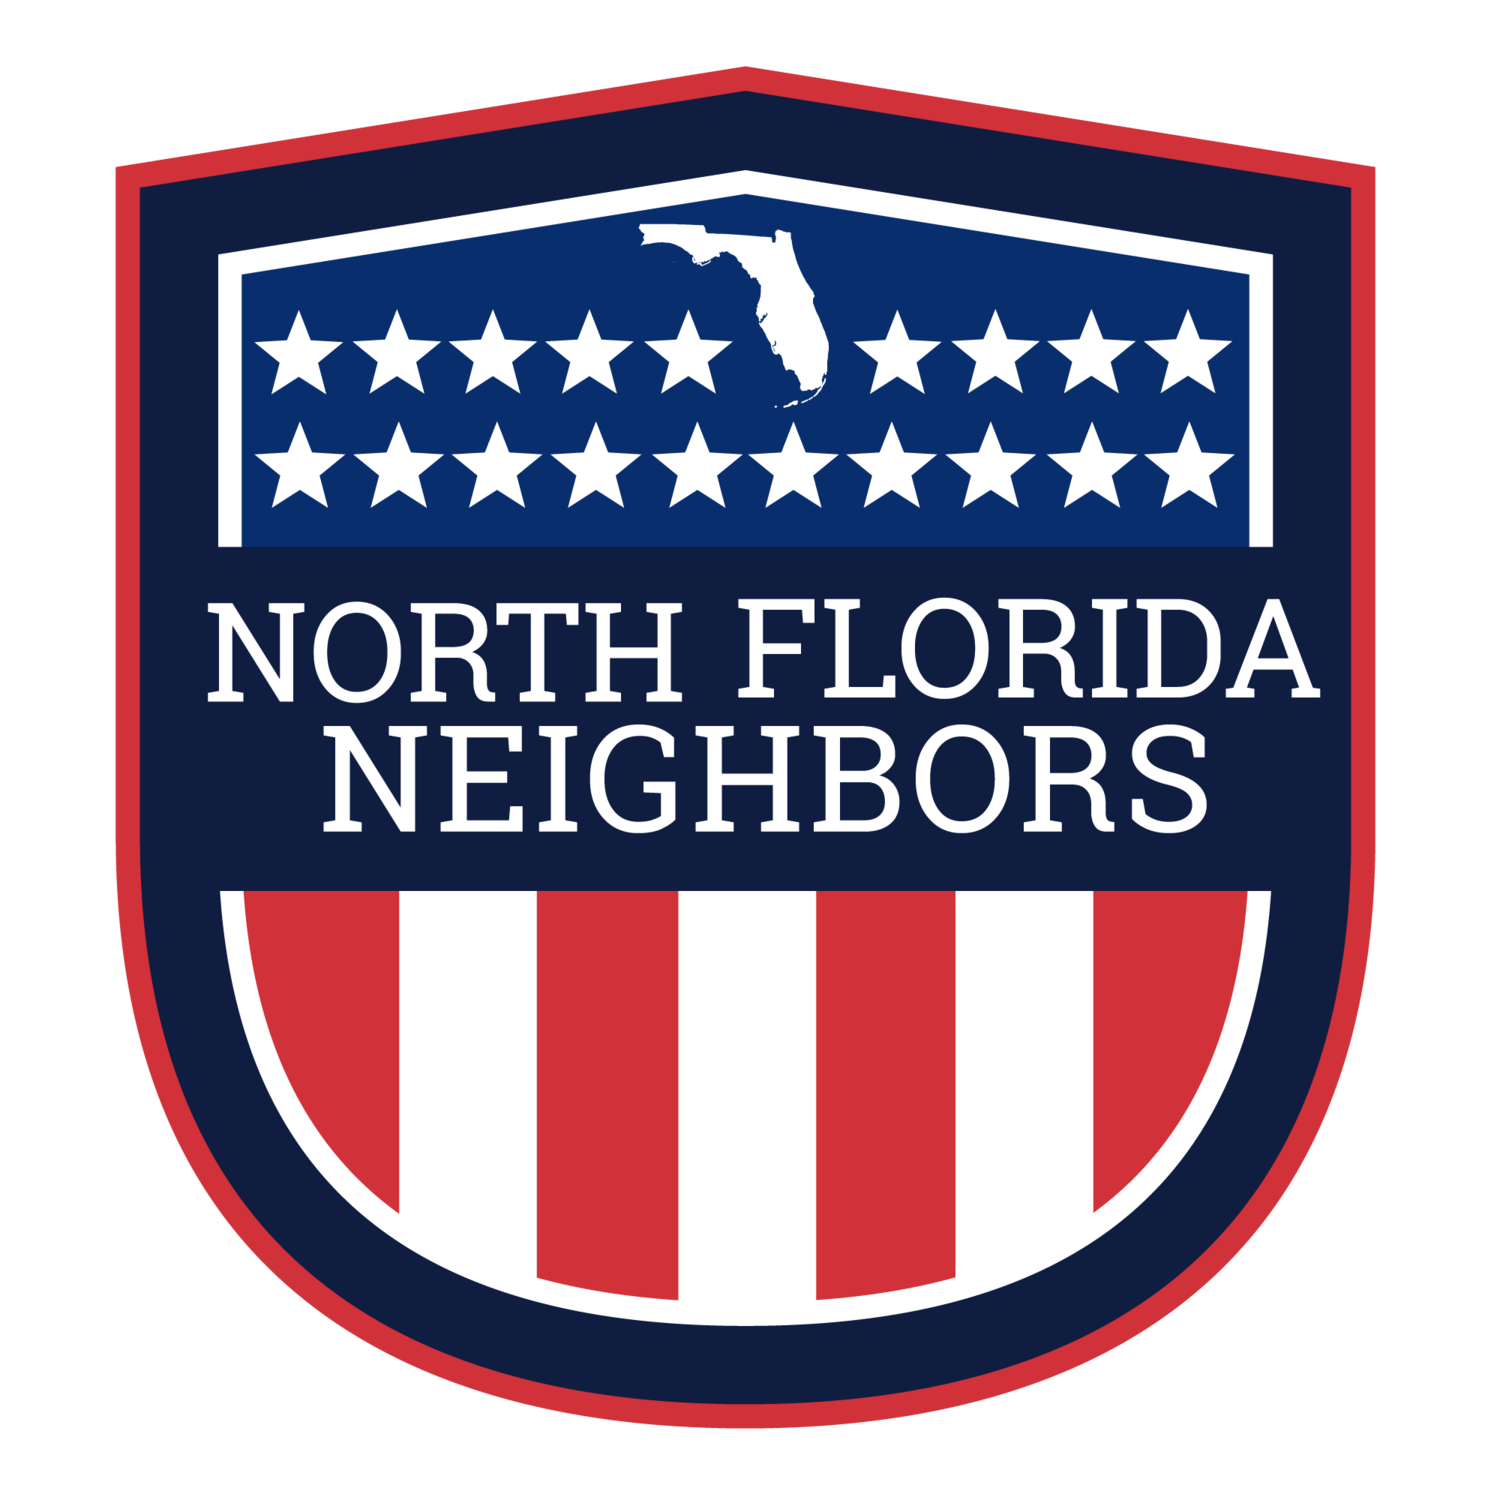 North Florida Neighbors